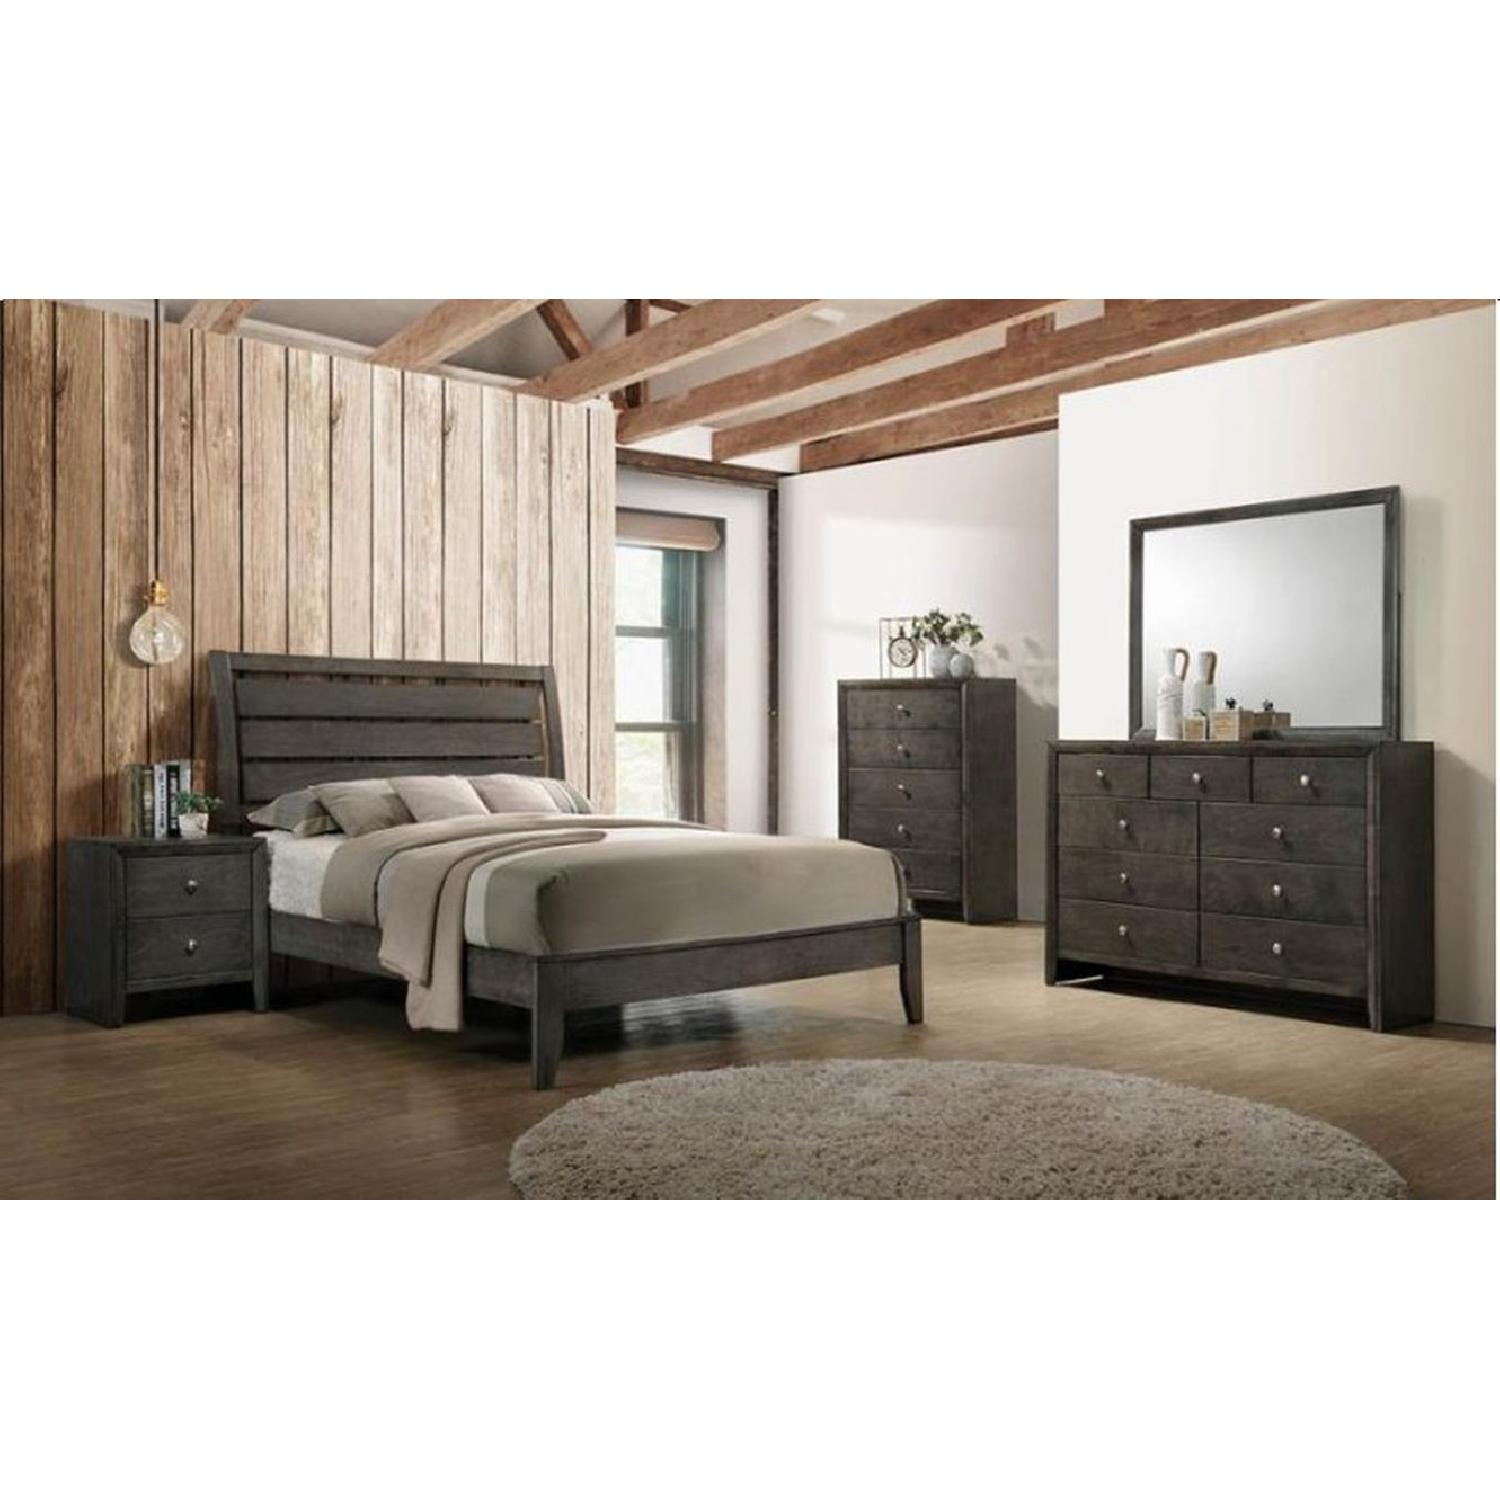 Modern King Bed w/ Clean Lines in Dark Grey Finish - image-2